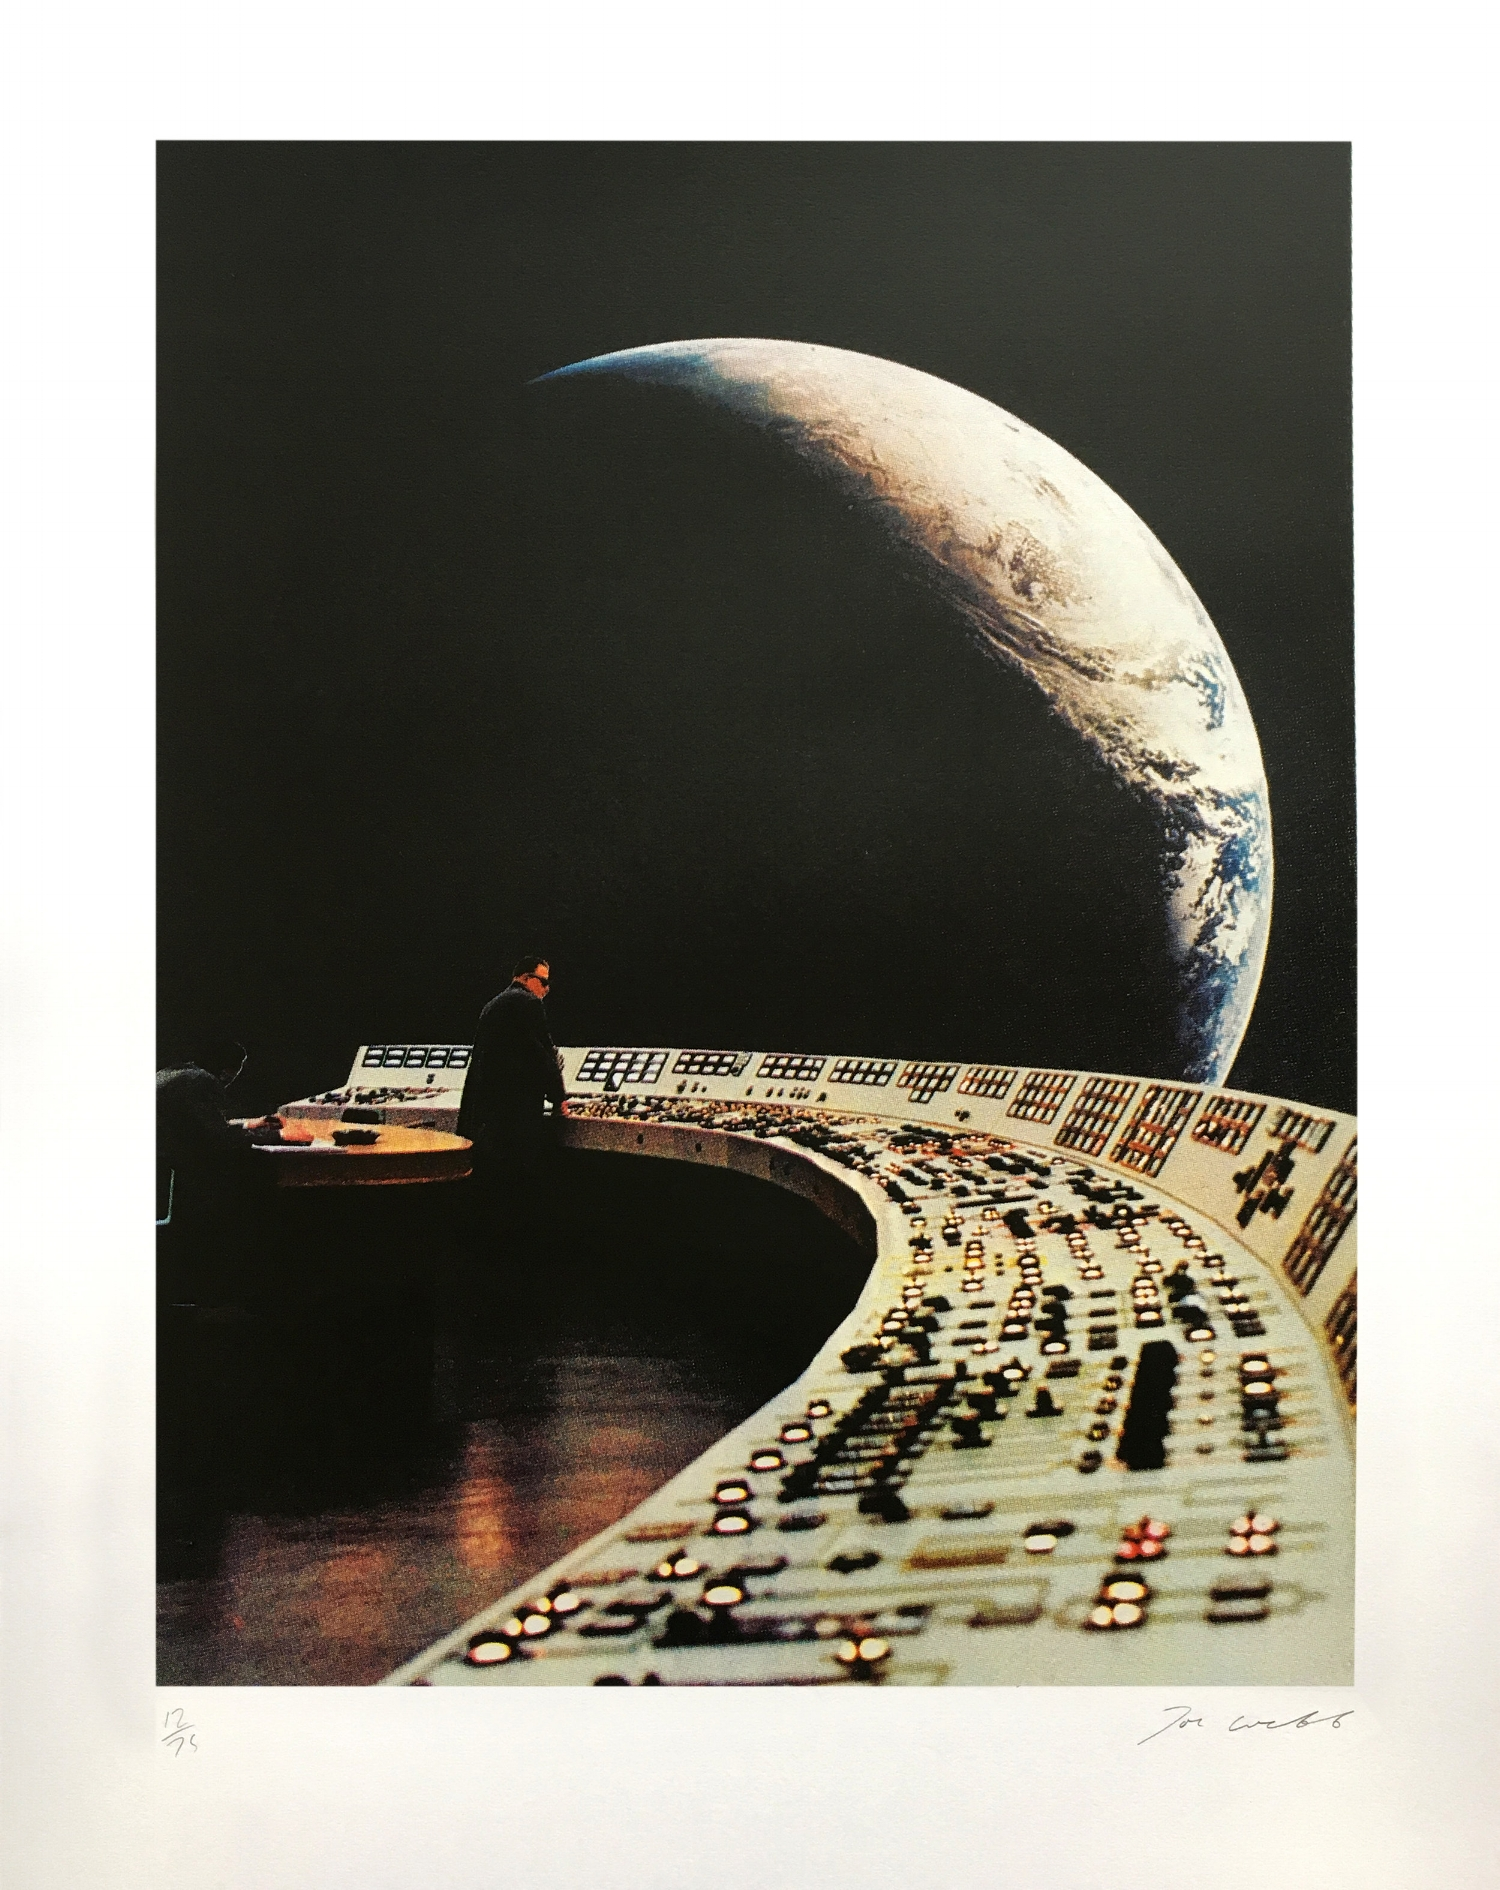 Image: Control Panel by Joe Webb - to be shown at Edit, Adapt and Evolve, Royal Over-Seas League, Mayfair.